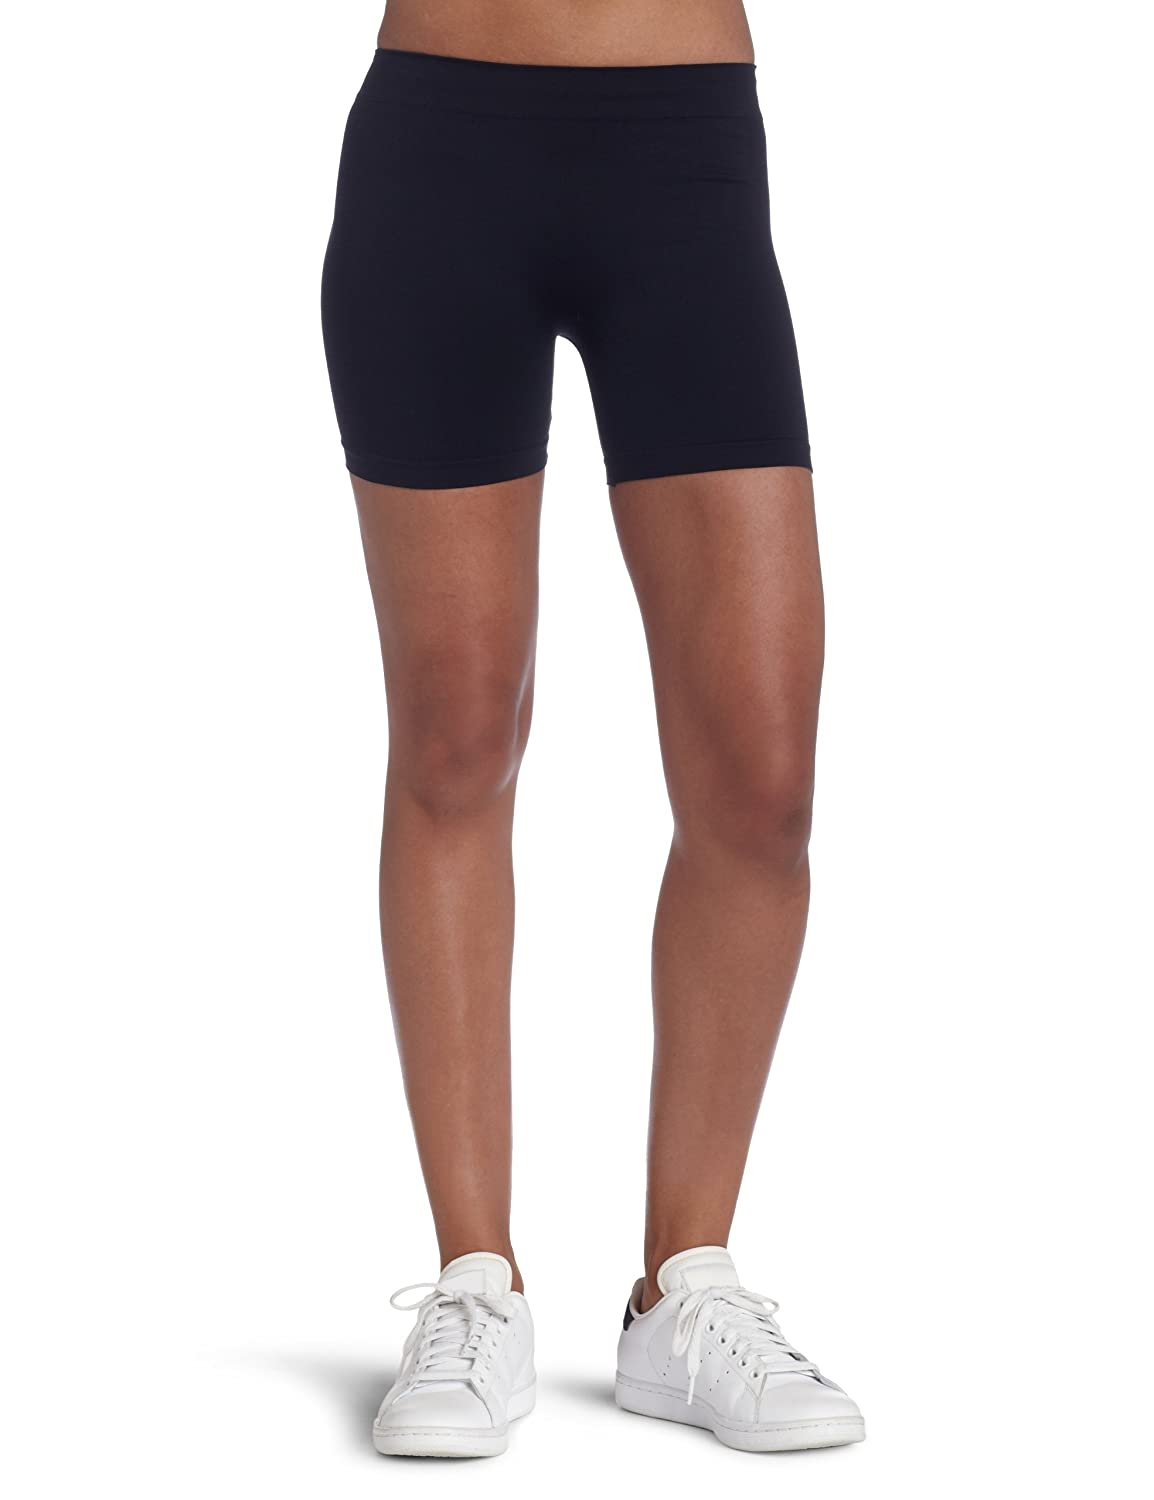 Boll茅 Women's Mesh Panel Seamless Tennis Short